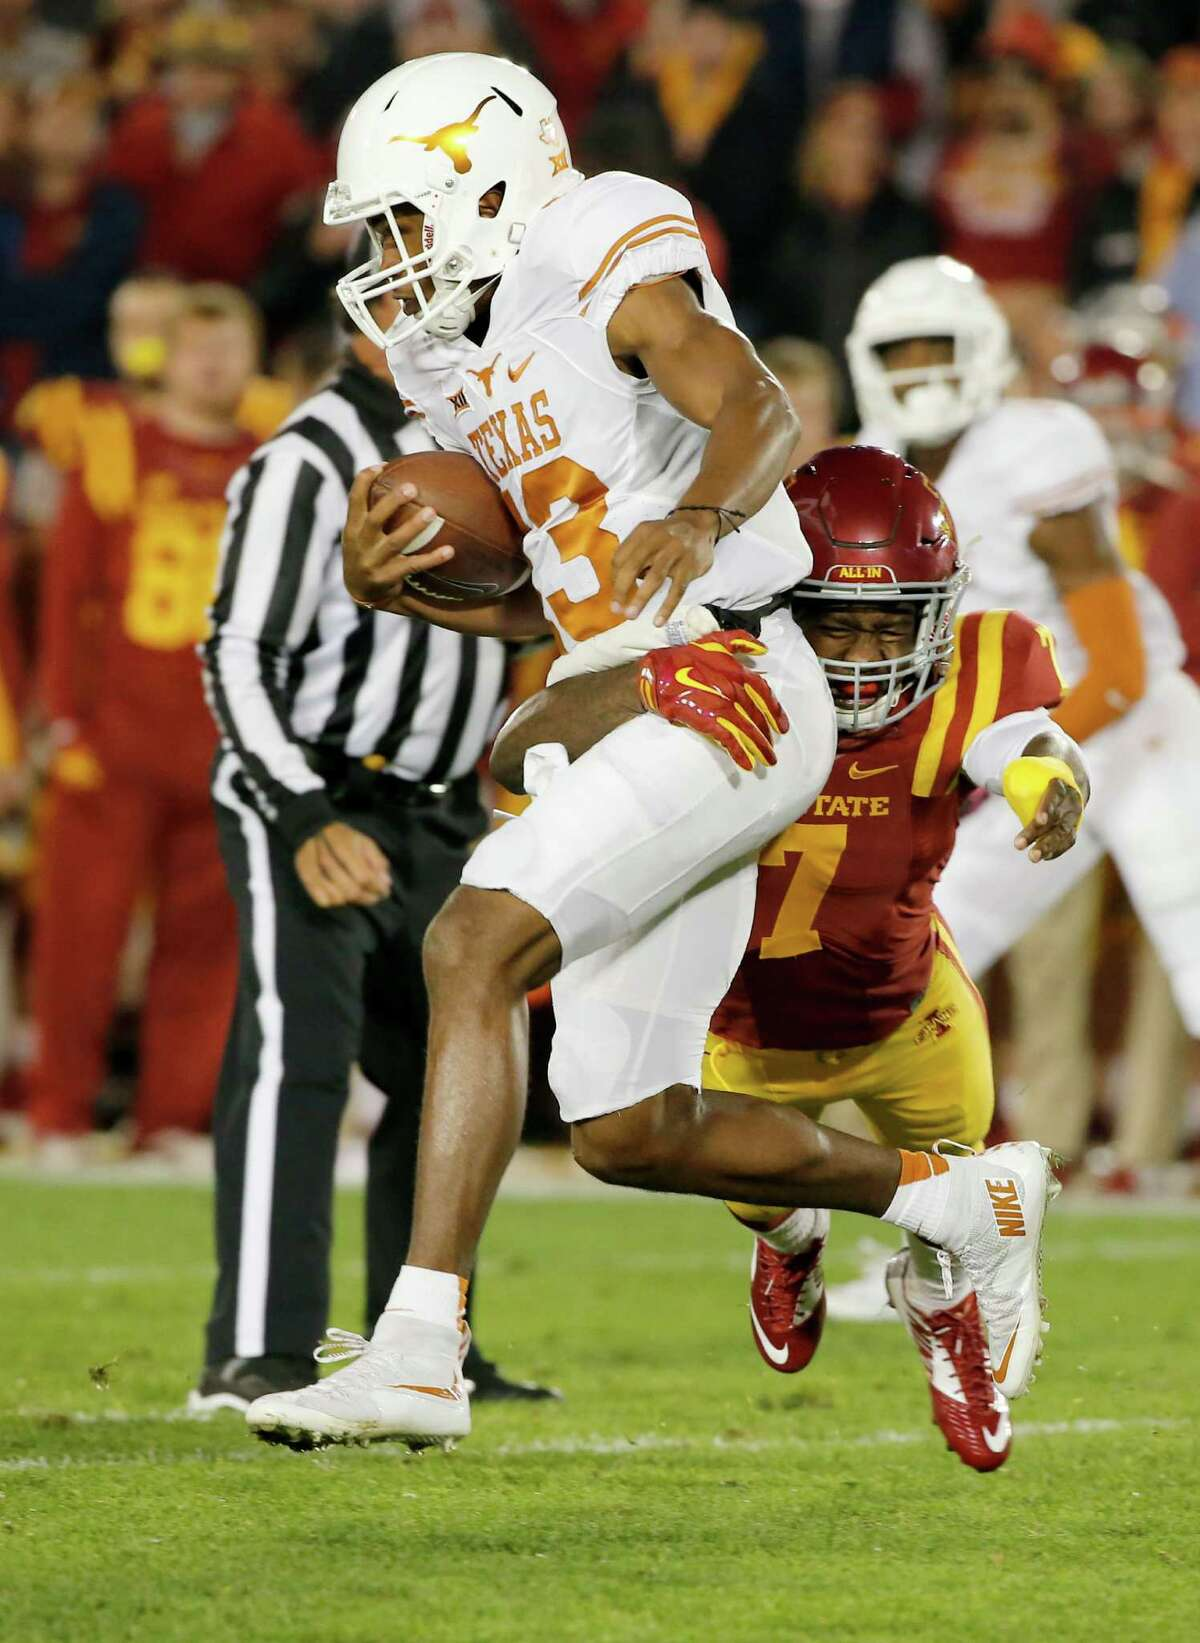 Quarterback Jerrod Heard of the Texas Longhorns is tackled by defensive back Qujuan Floyd of the Iowa State Cyclones as he scrambled for yards in the first half.